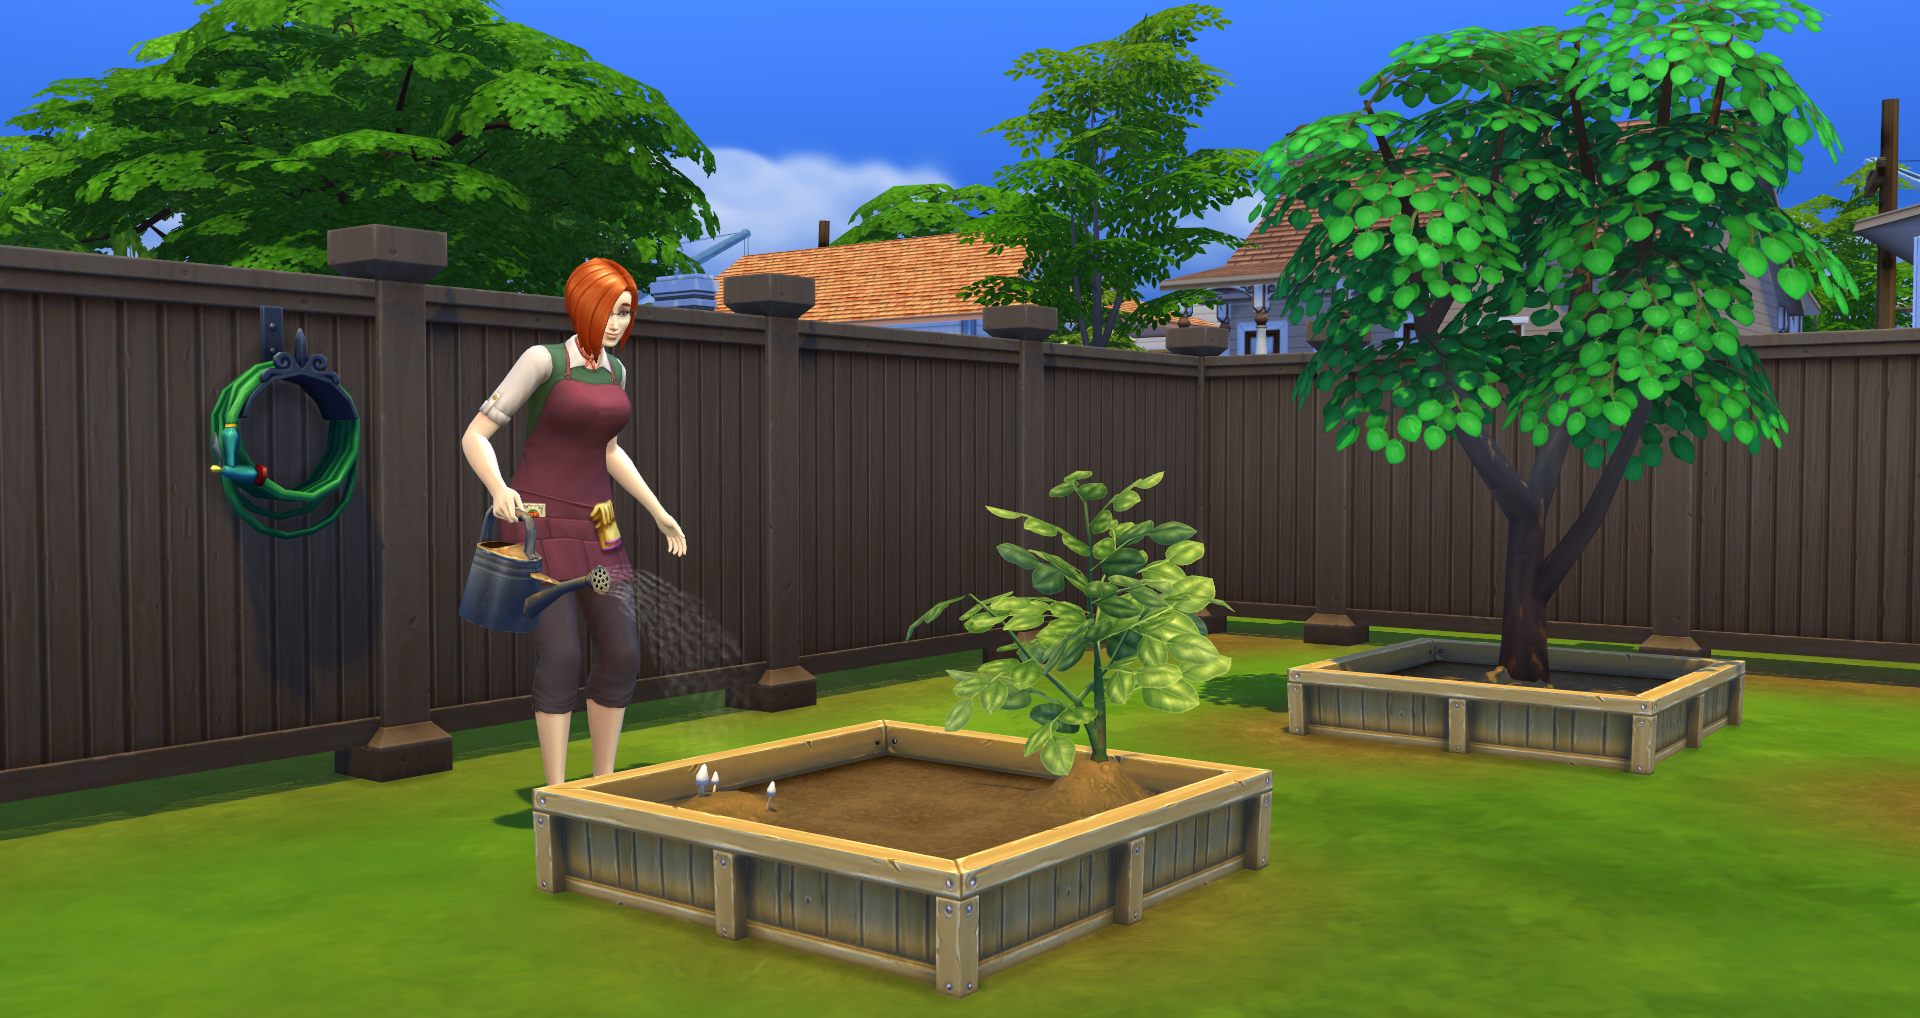 Gardening (The Sims 4) | The Sims Wiki | FANDOM powered by Wikia